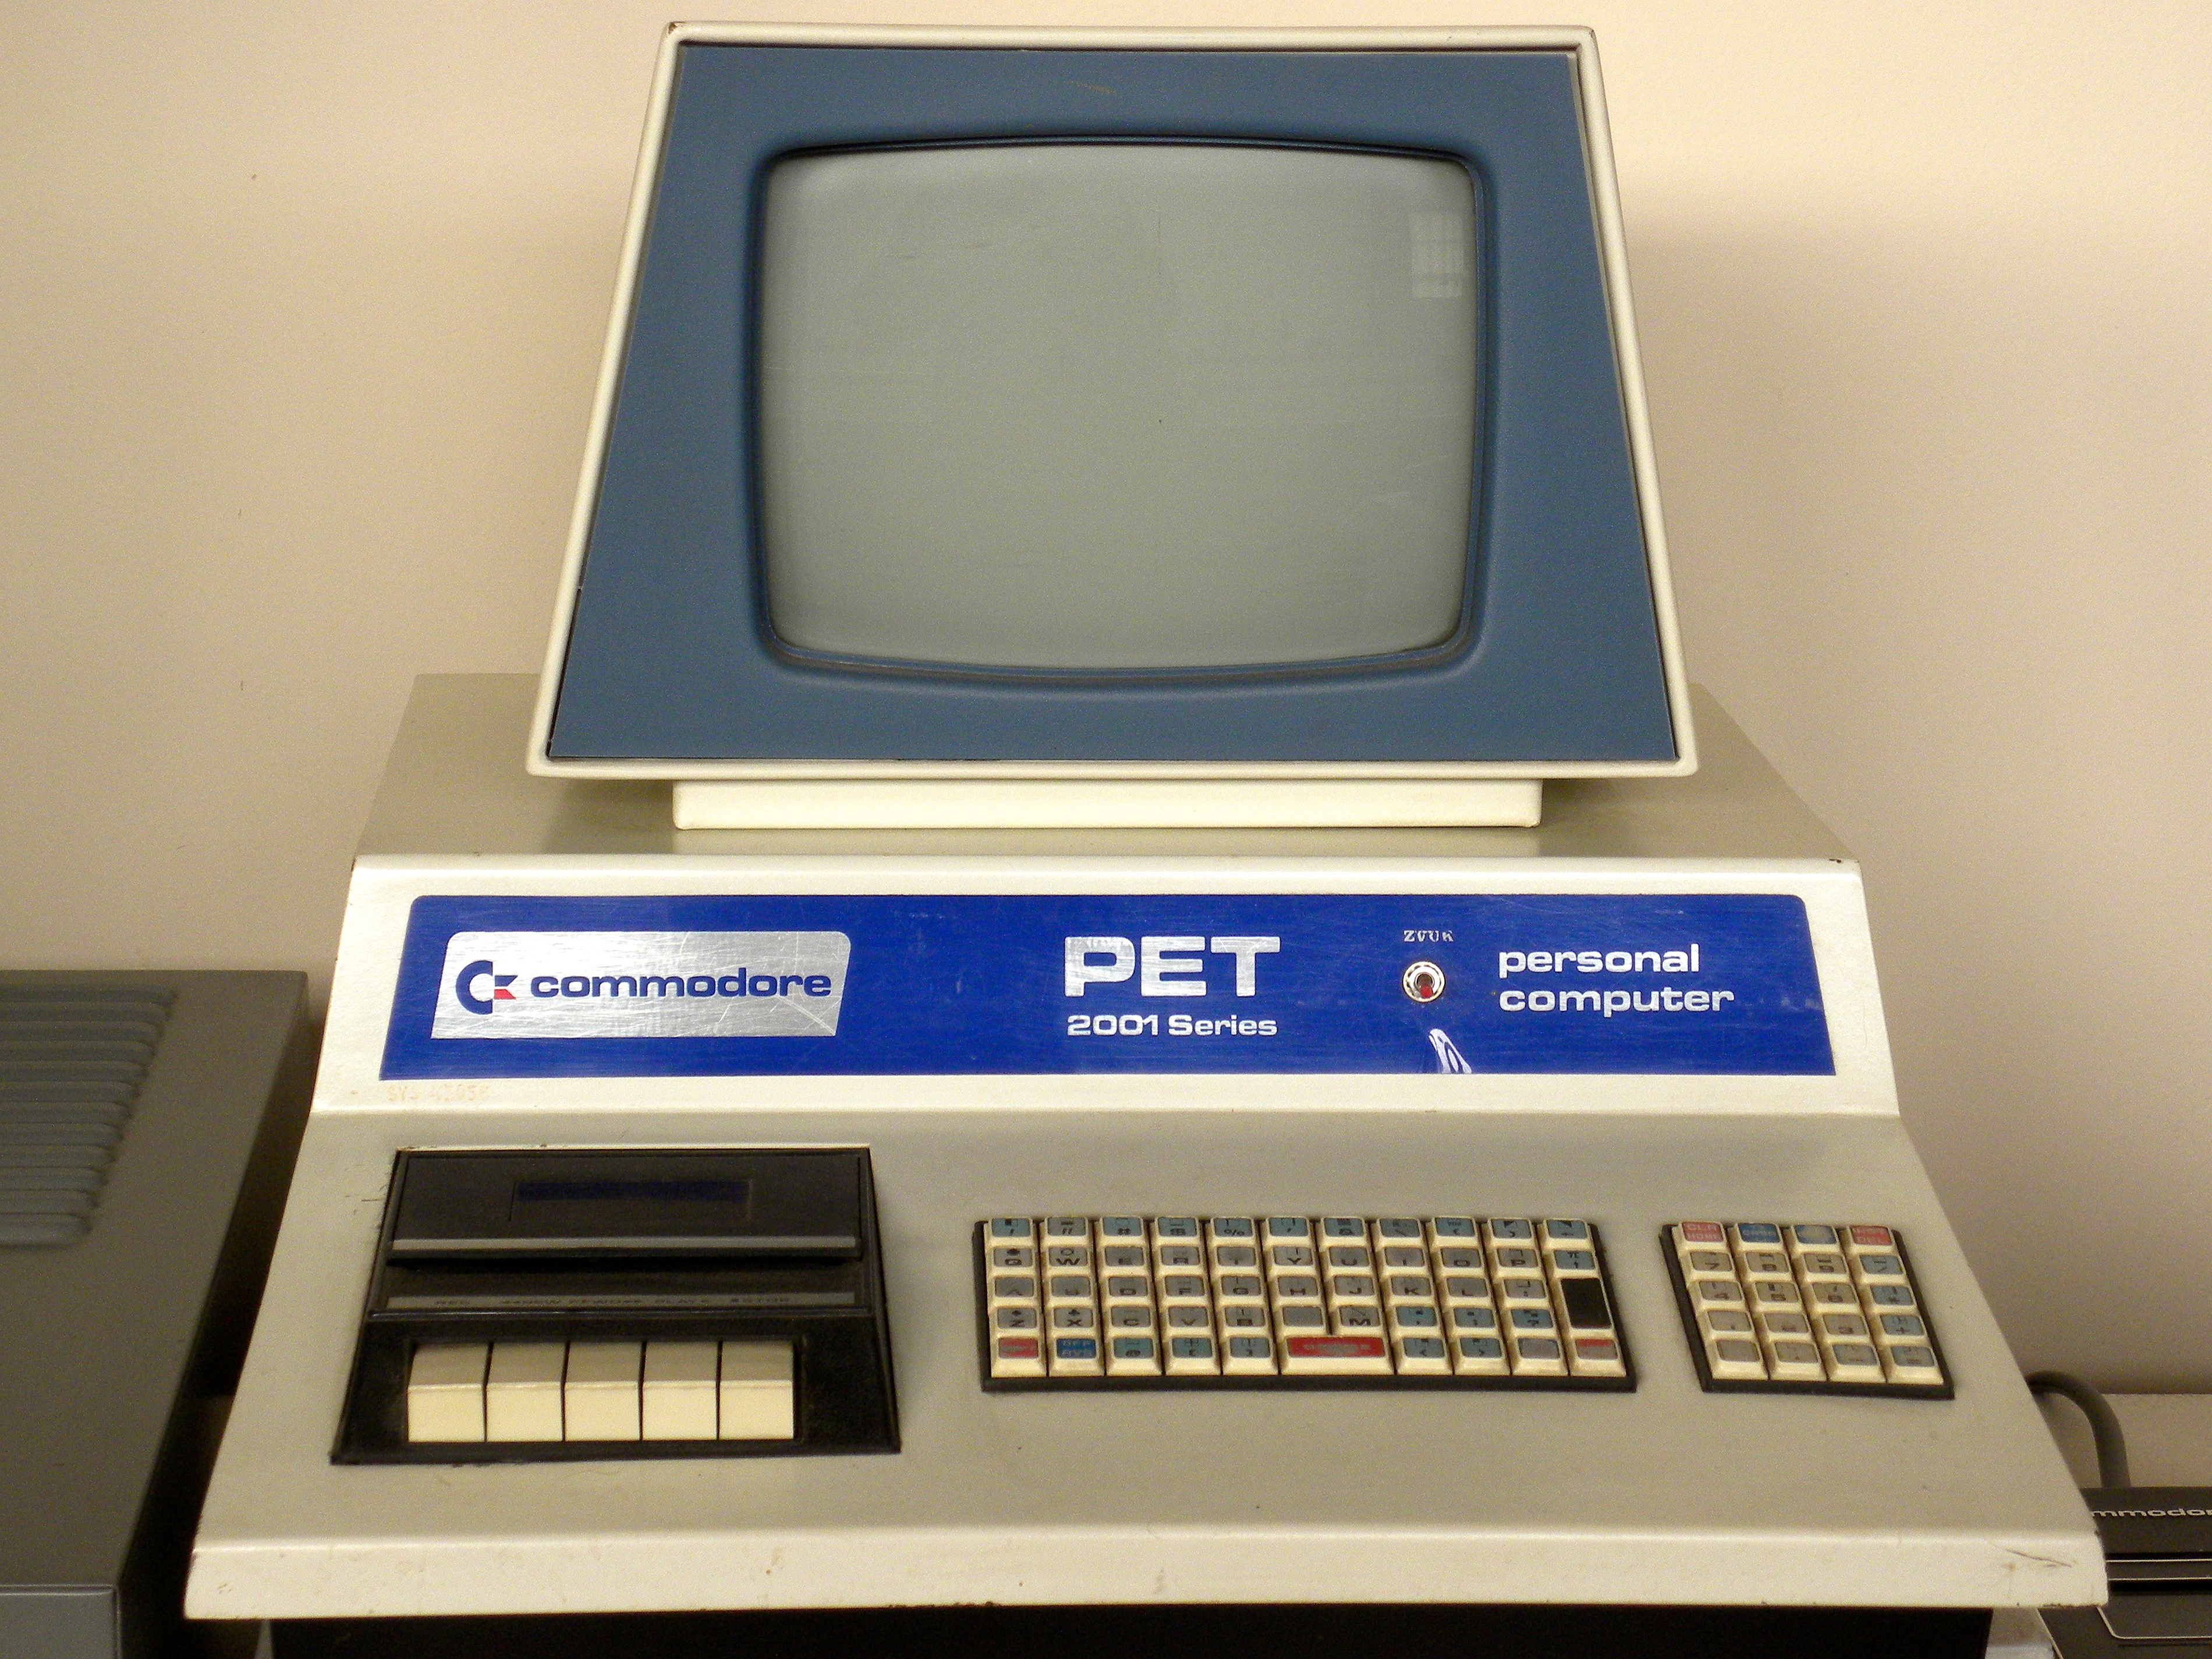 1 Commodore PET 2001 HD Wallpapers | Backgrounds - Wallpaper Abyss